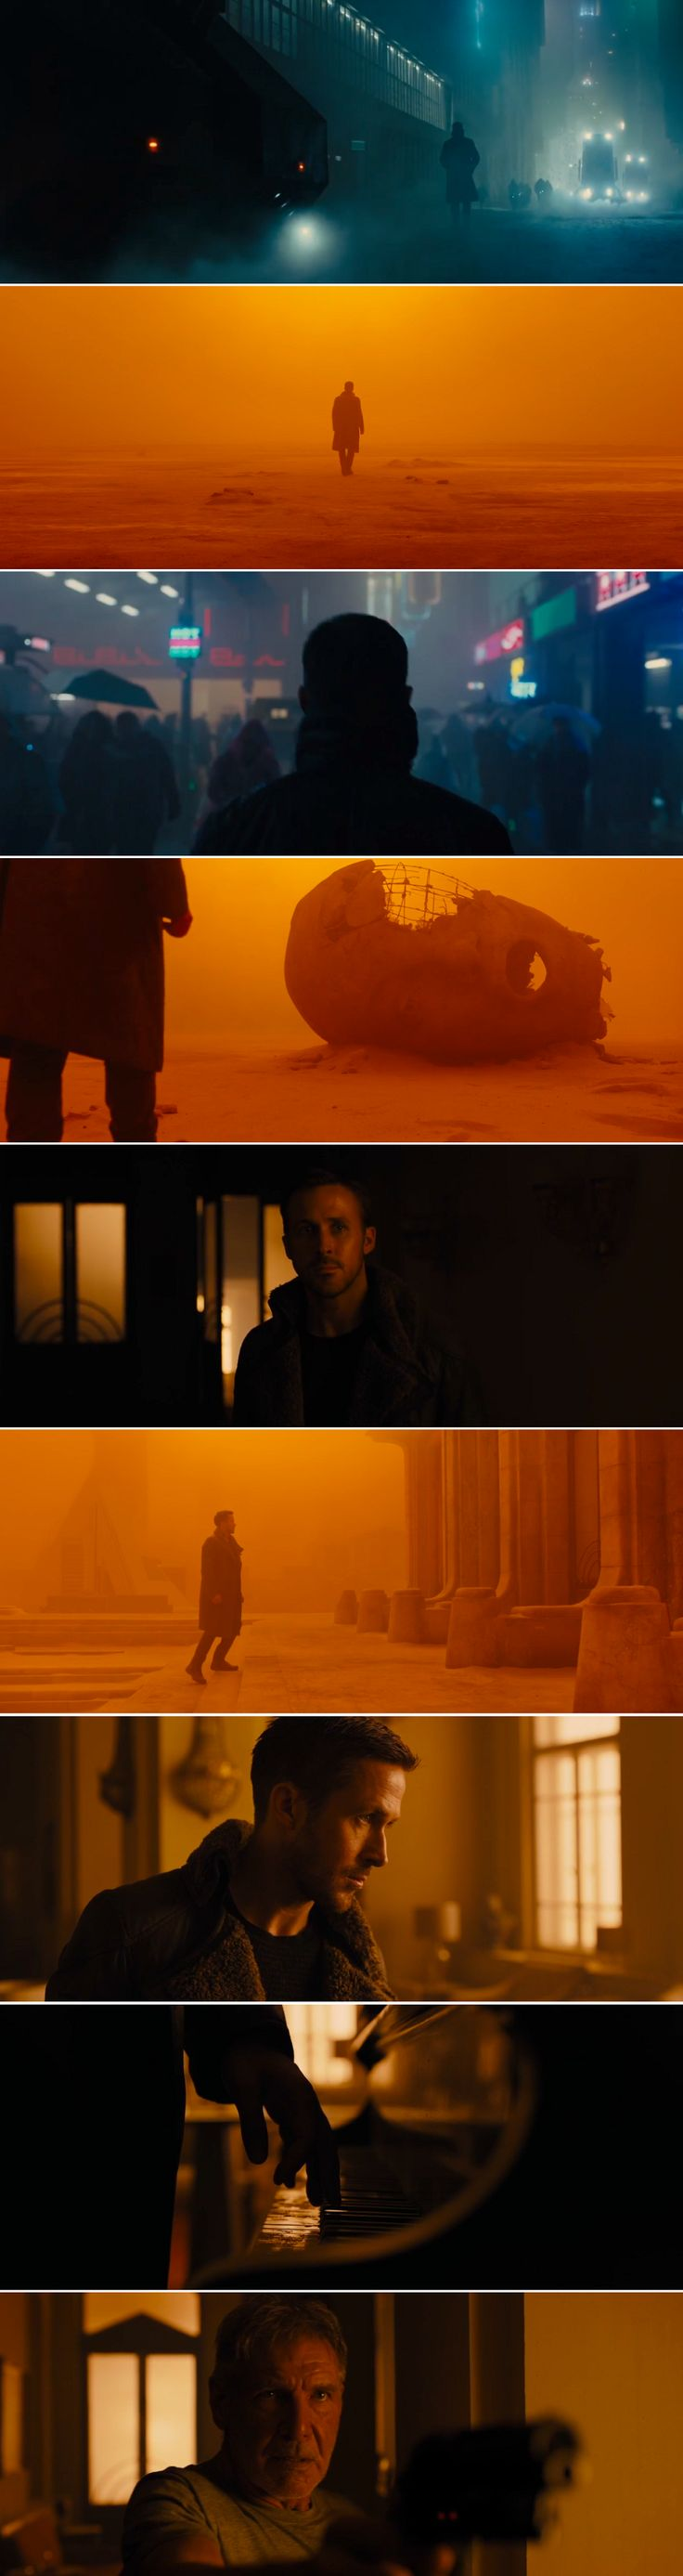 """I had your job once. I was good at it."" -Blade Runner 2049, directed by Denis Villeneuve; 2017"